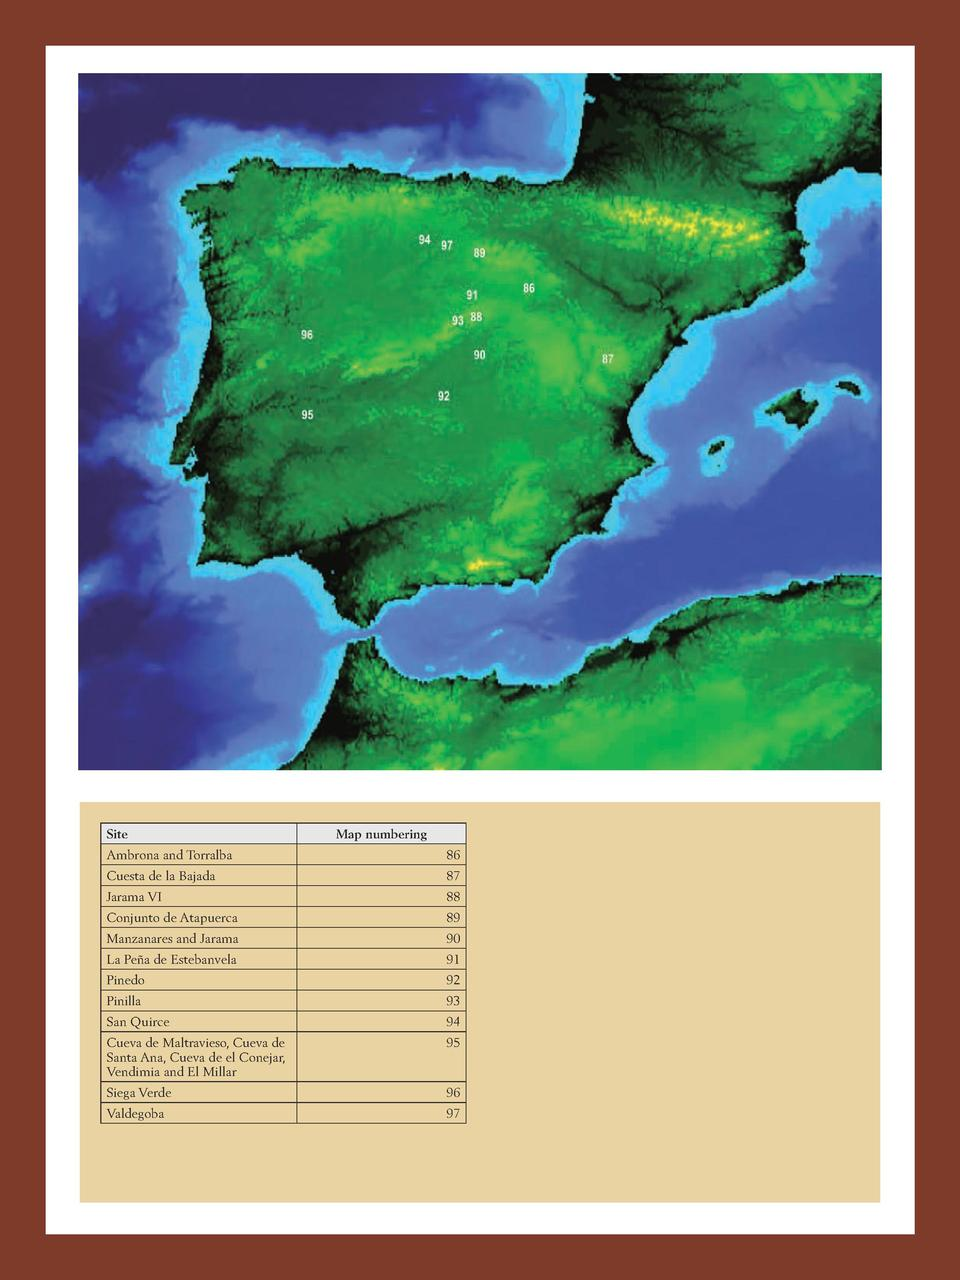 516  PLEISTOCENE AND HOLOCENE HUNTER-GATHERERS IN IBERIA AND THE GIBRALTAR STRAIT  THE CURRENT ARCHAEOLOGICAL RECORD  Site...